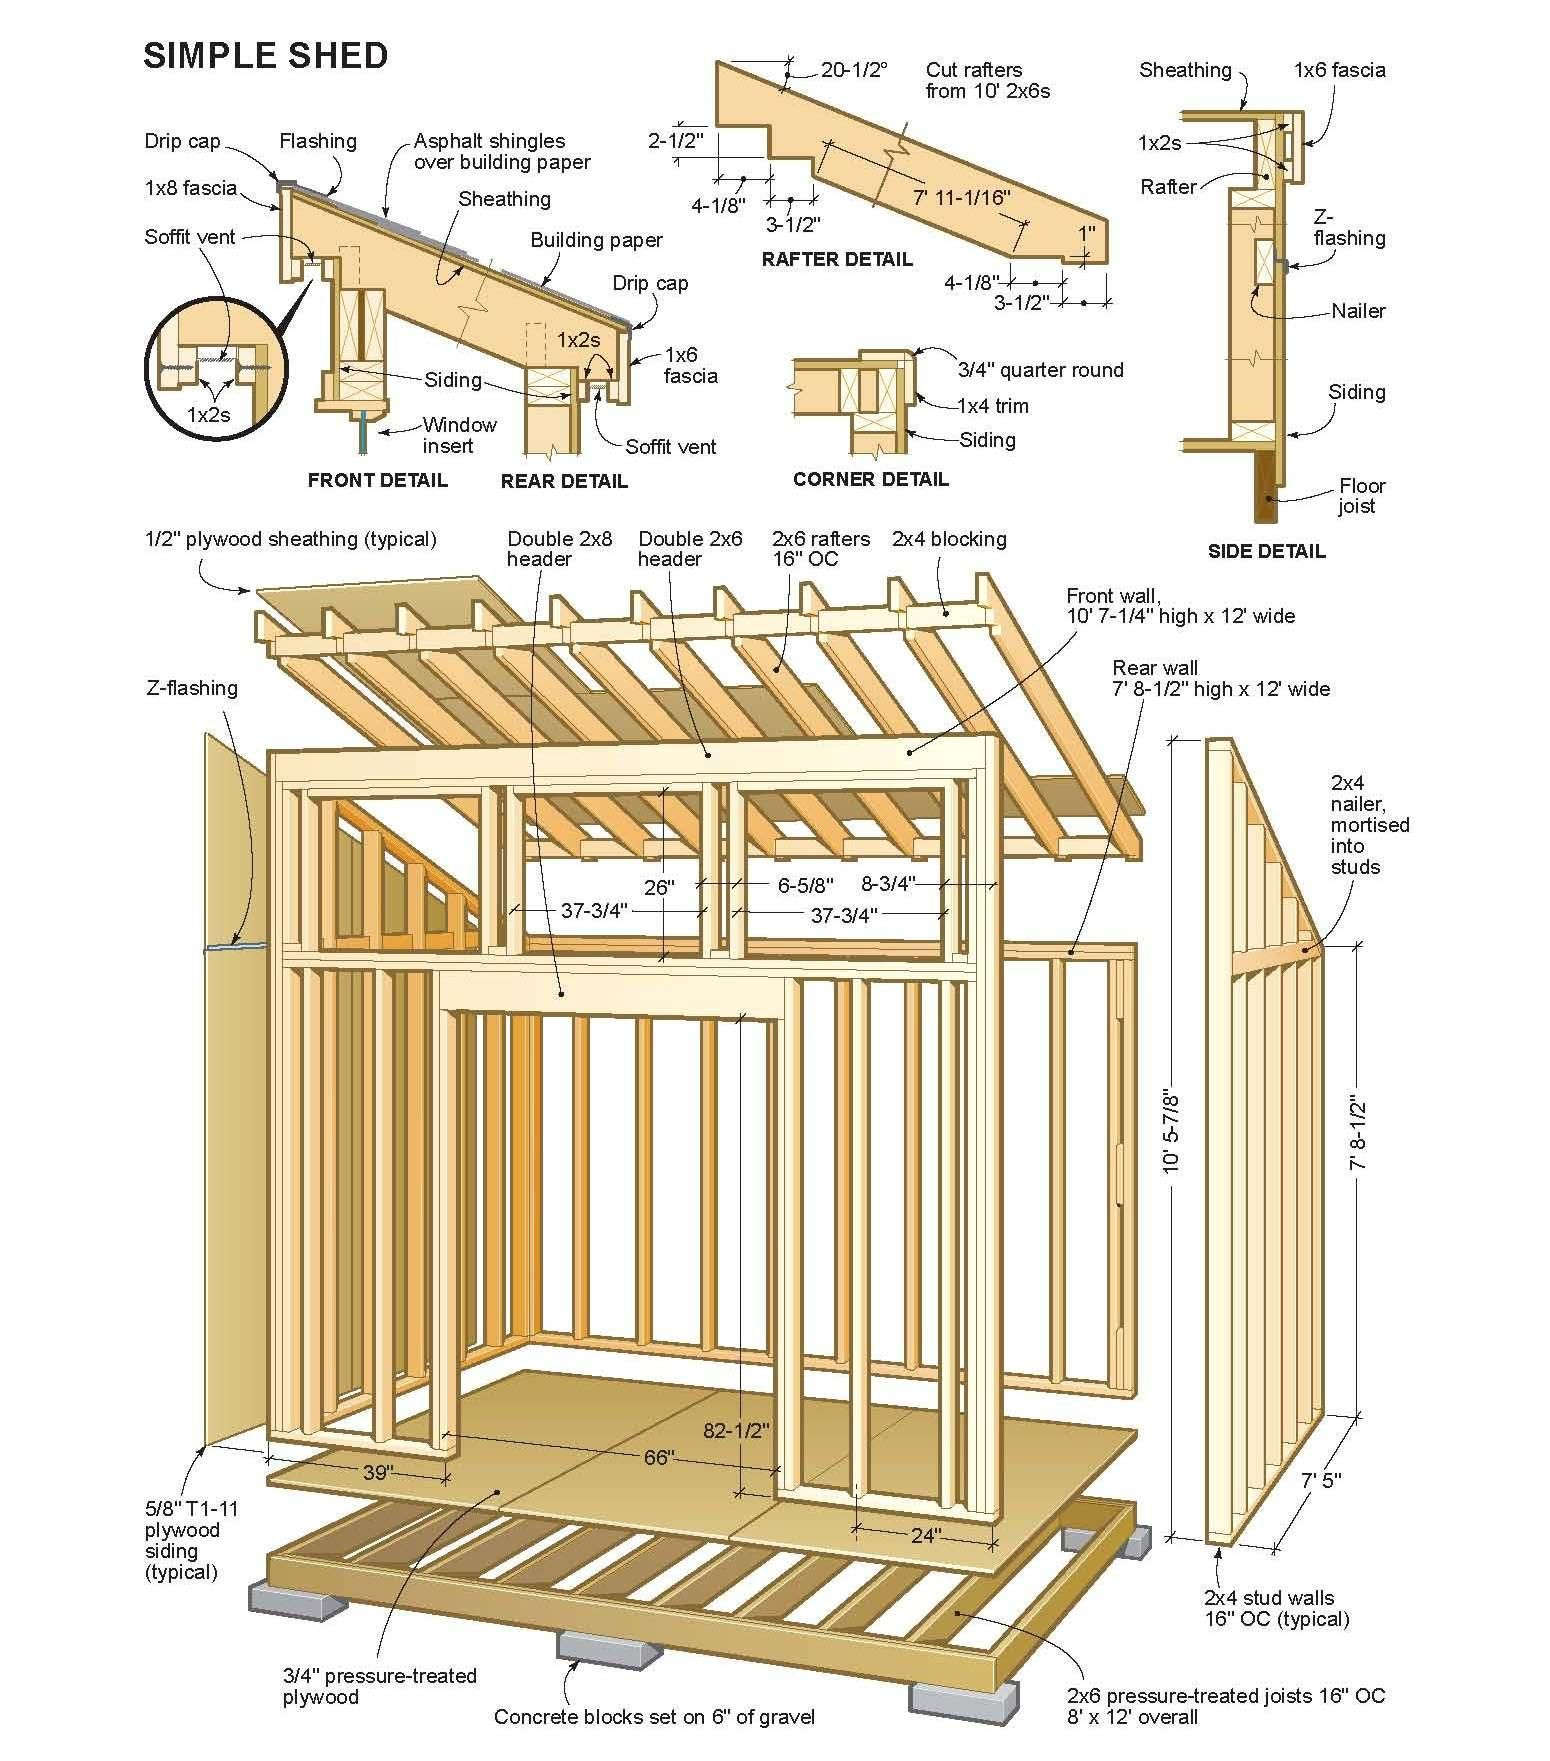 Wooden Shed Plans Wood Shed Plans Simple Shed Shed Blueprints